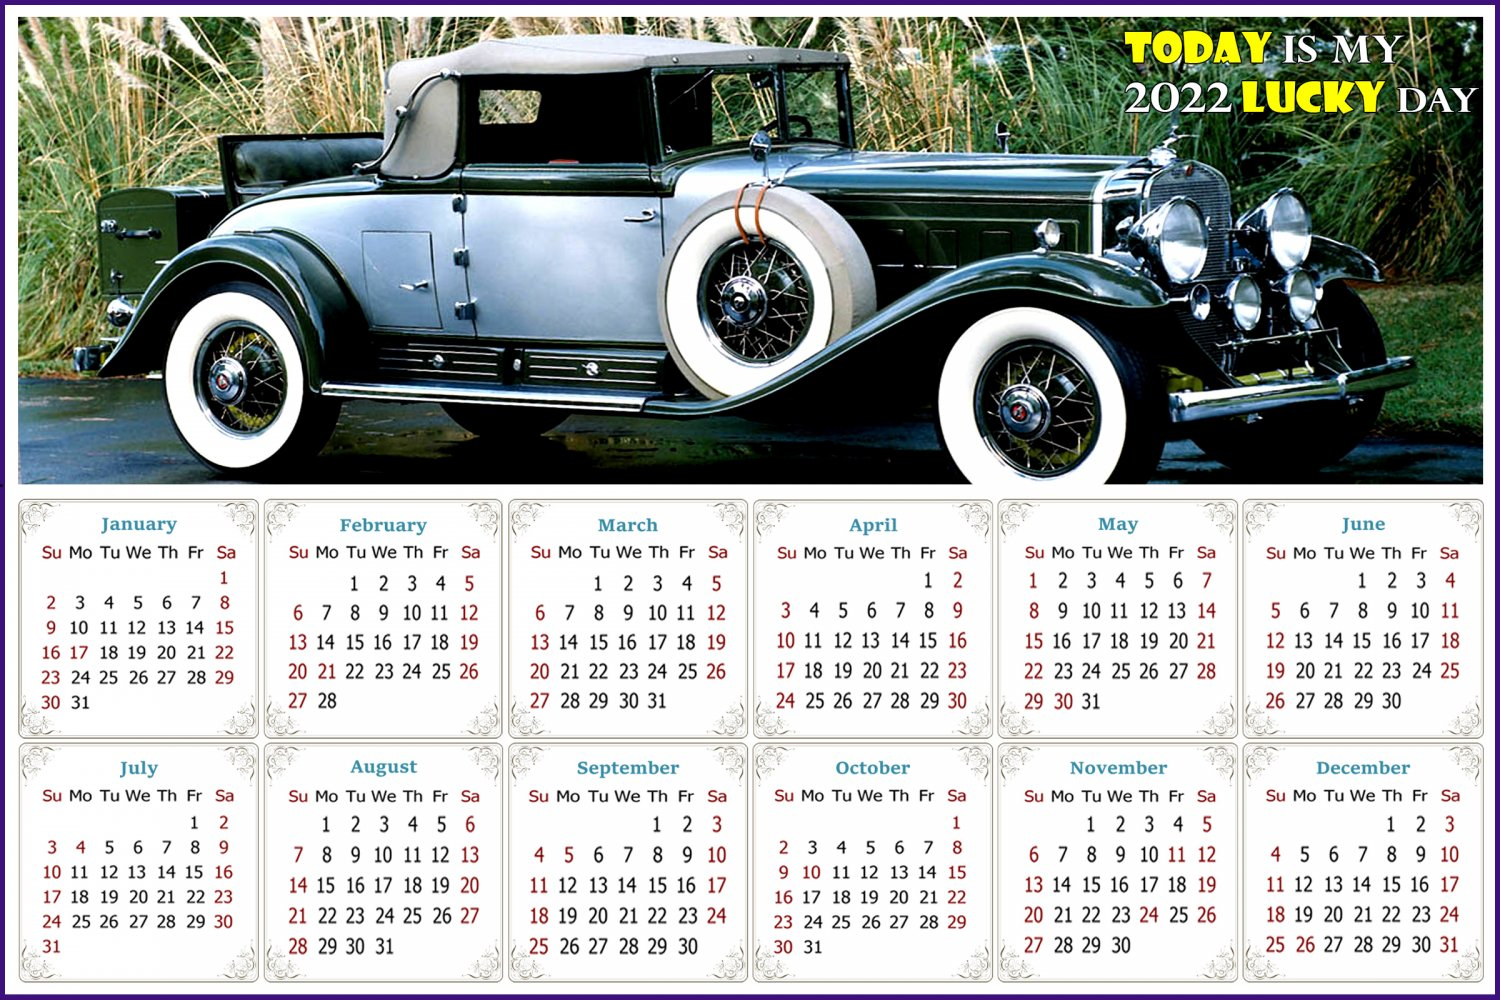 2022 Magnetic Calendar - Calendar Magnets - Today is my Lucky Day - Cars Edition #45